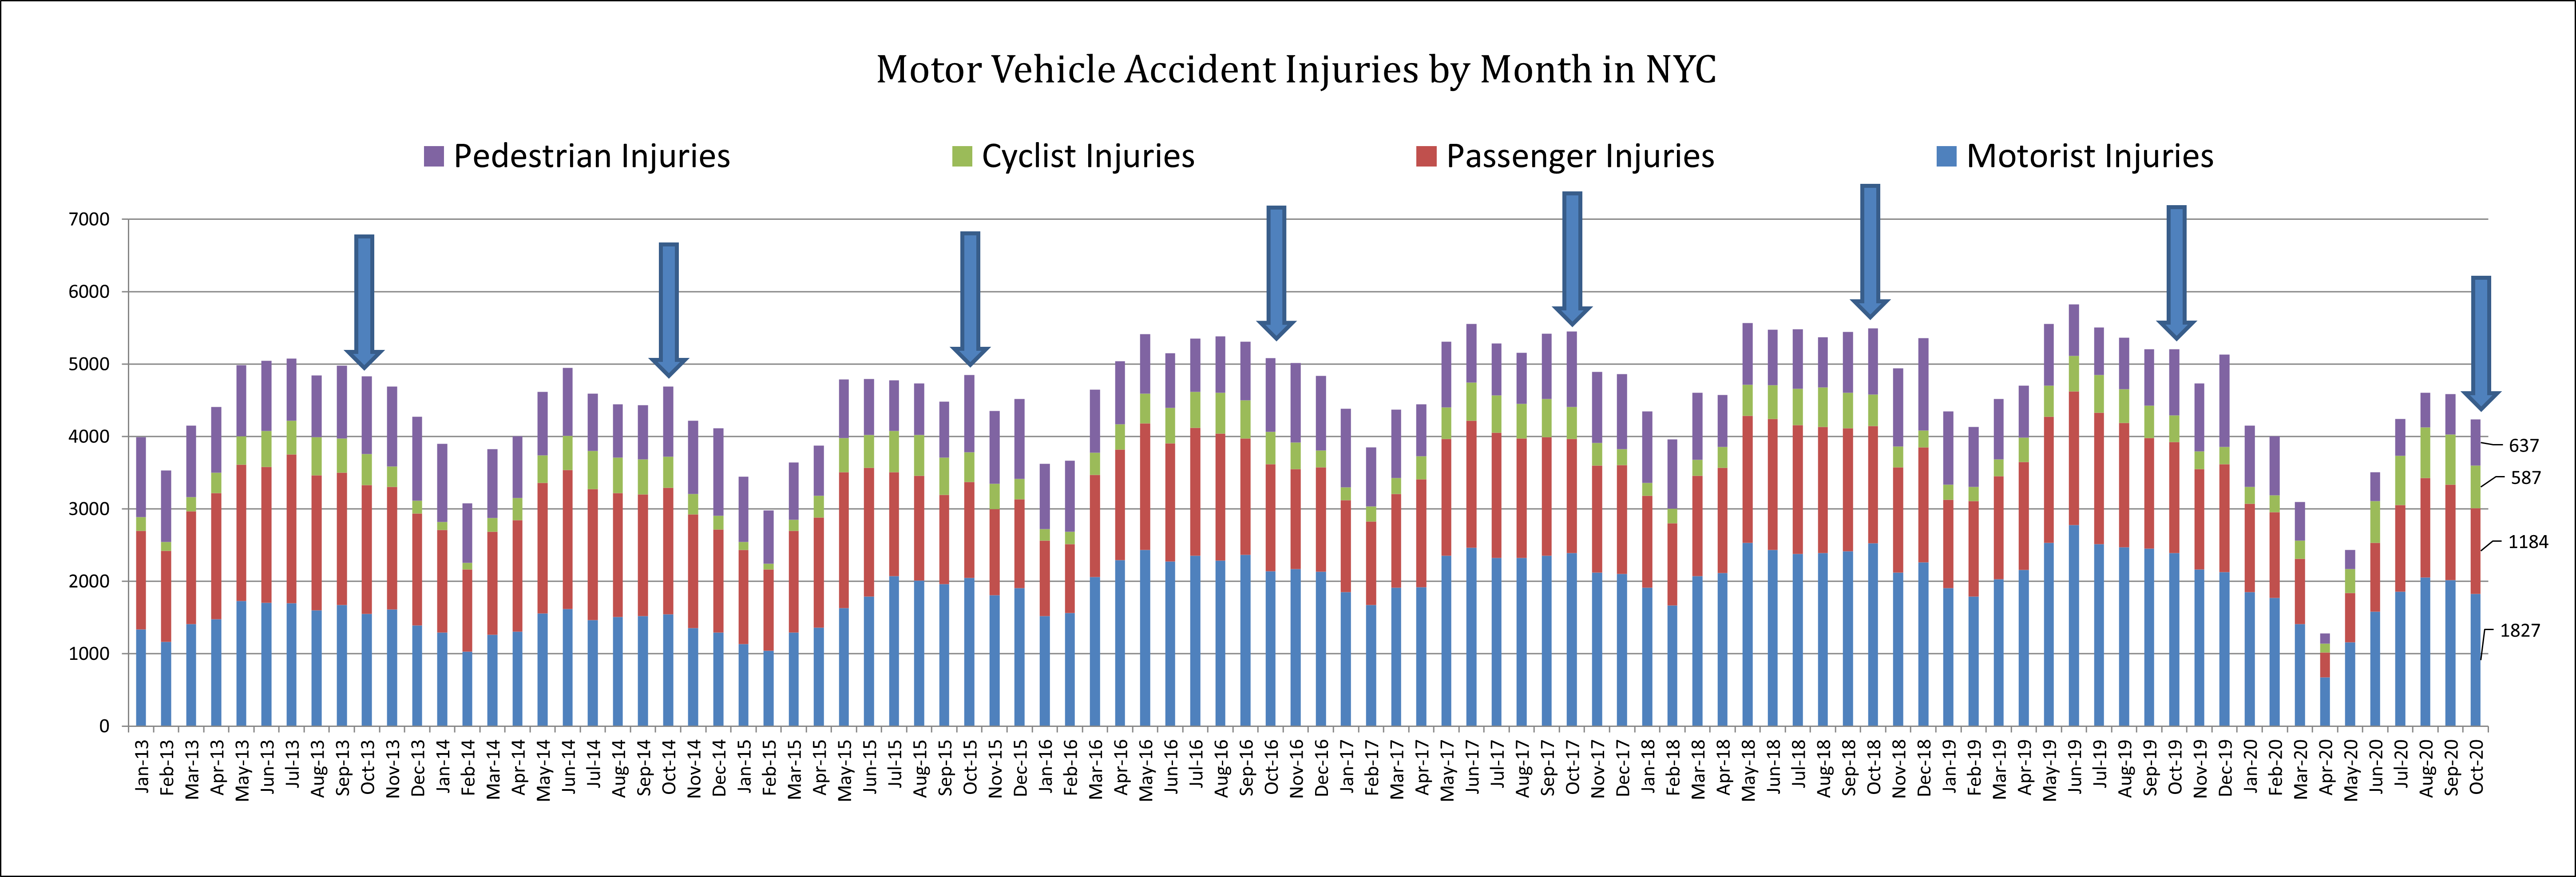 injuries in auto accidents in October 2020 in New York